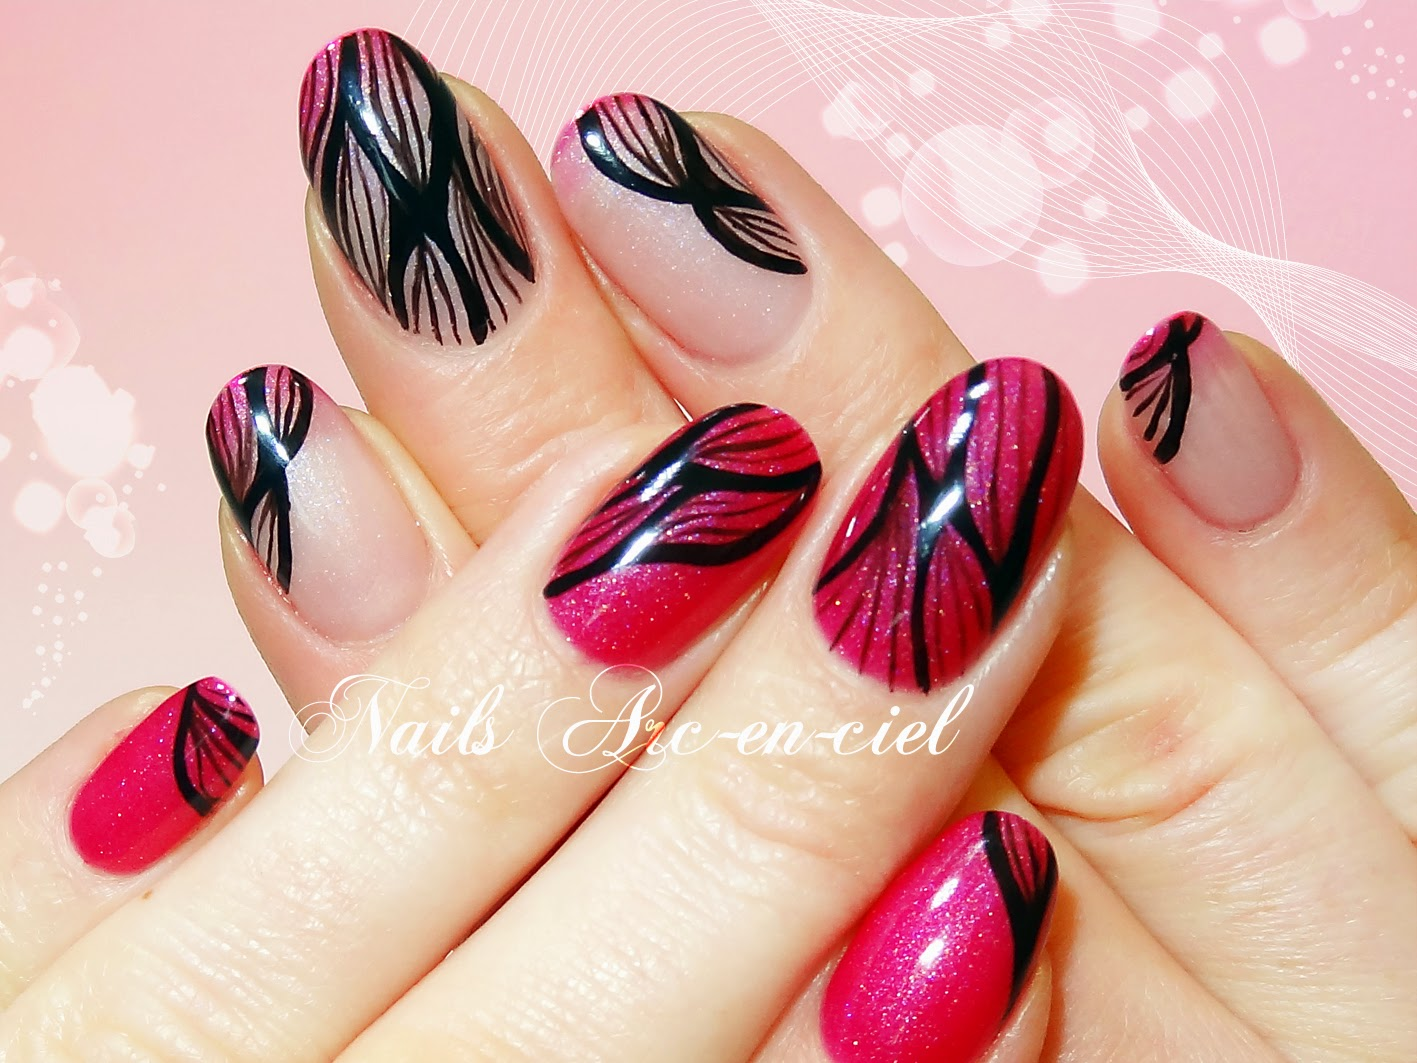 http://nails-arcenciel.blogspot.fr/2015/03/nail-art-abstrait-au-trait.html